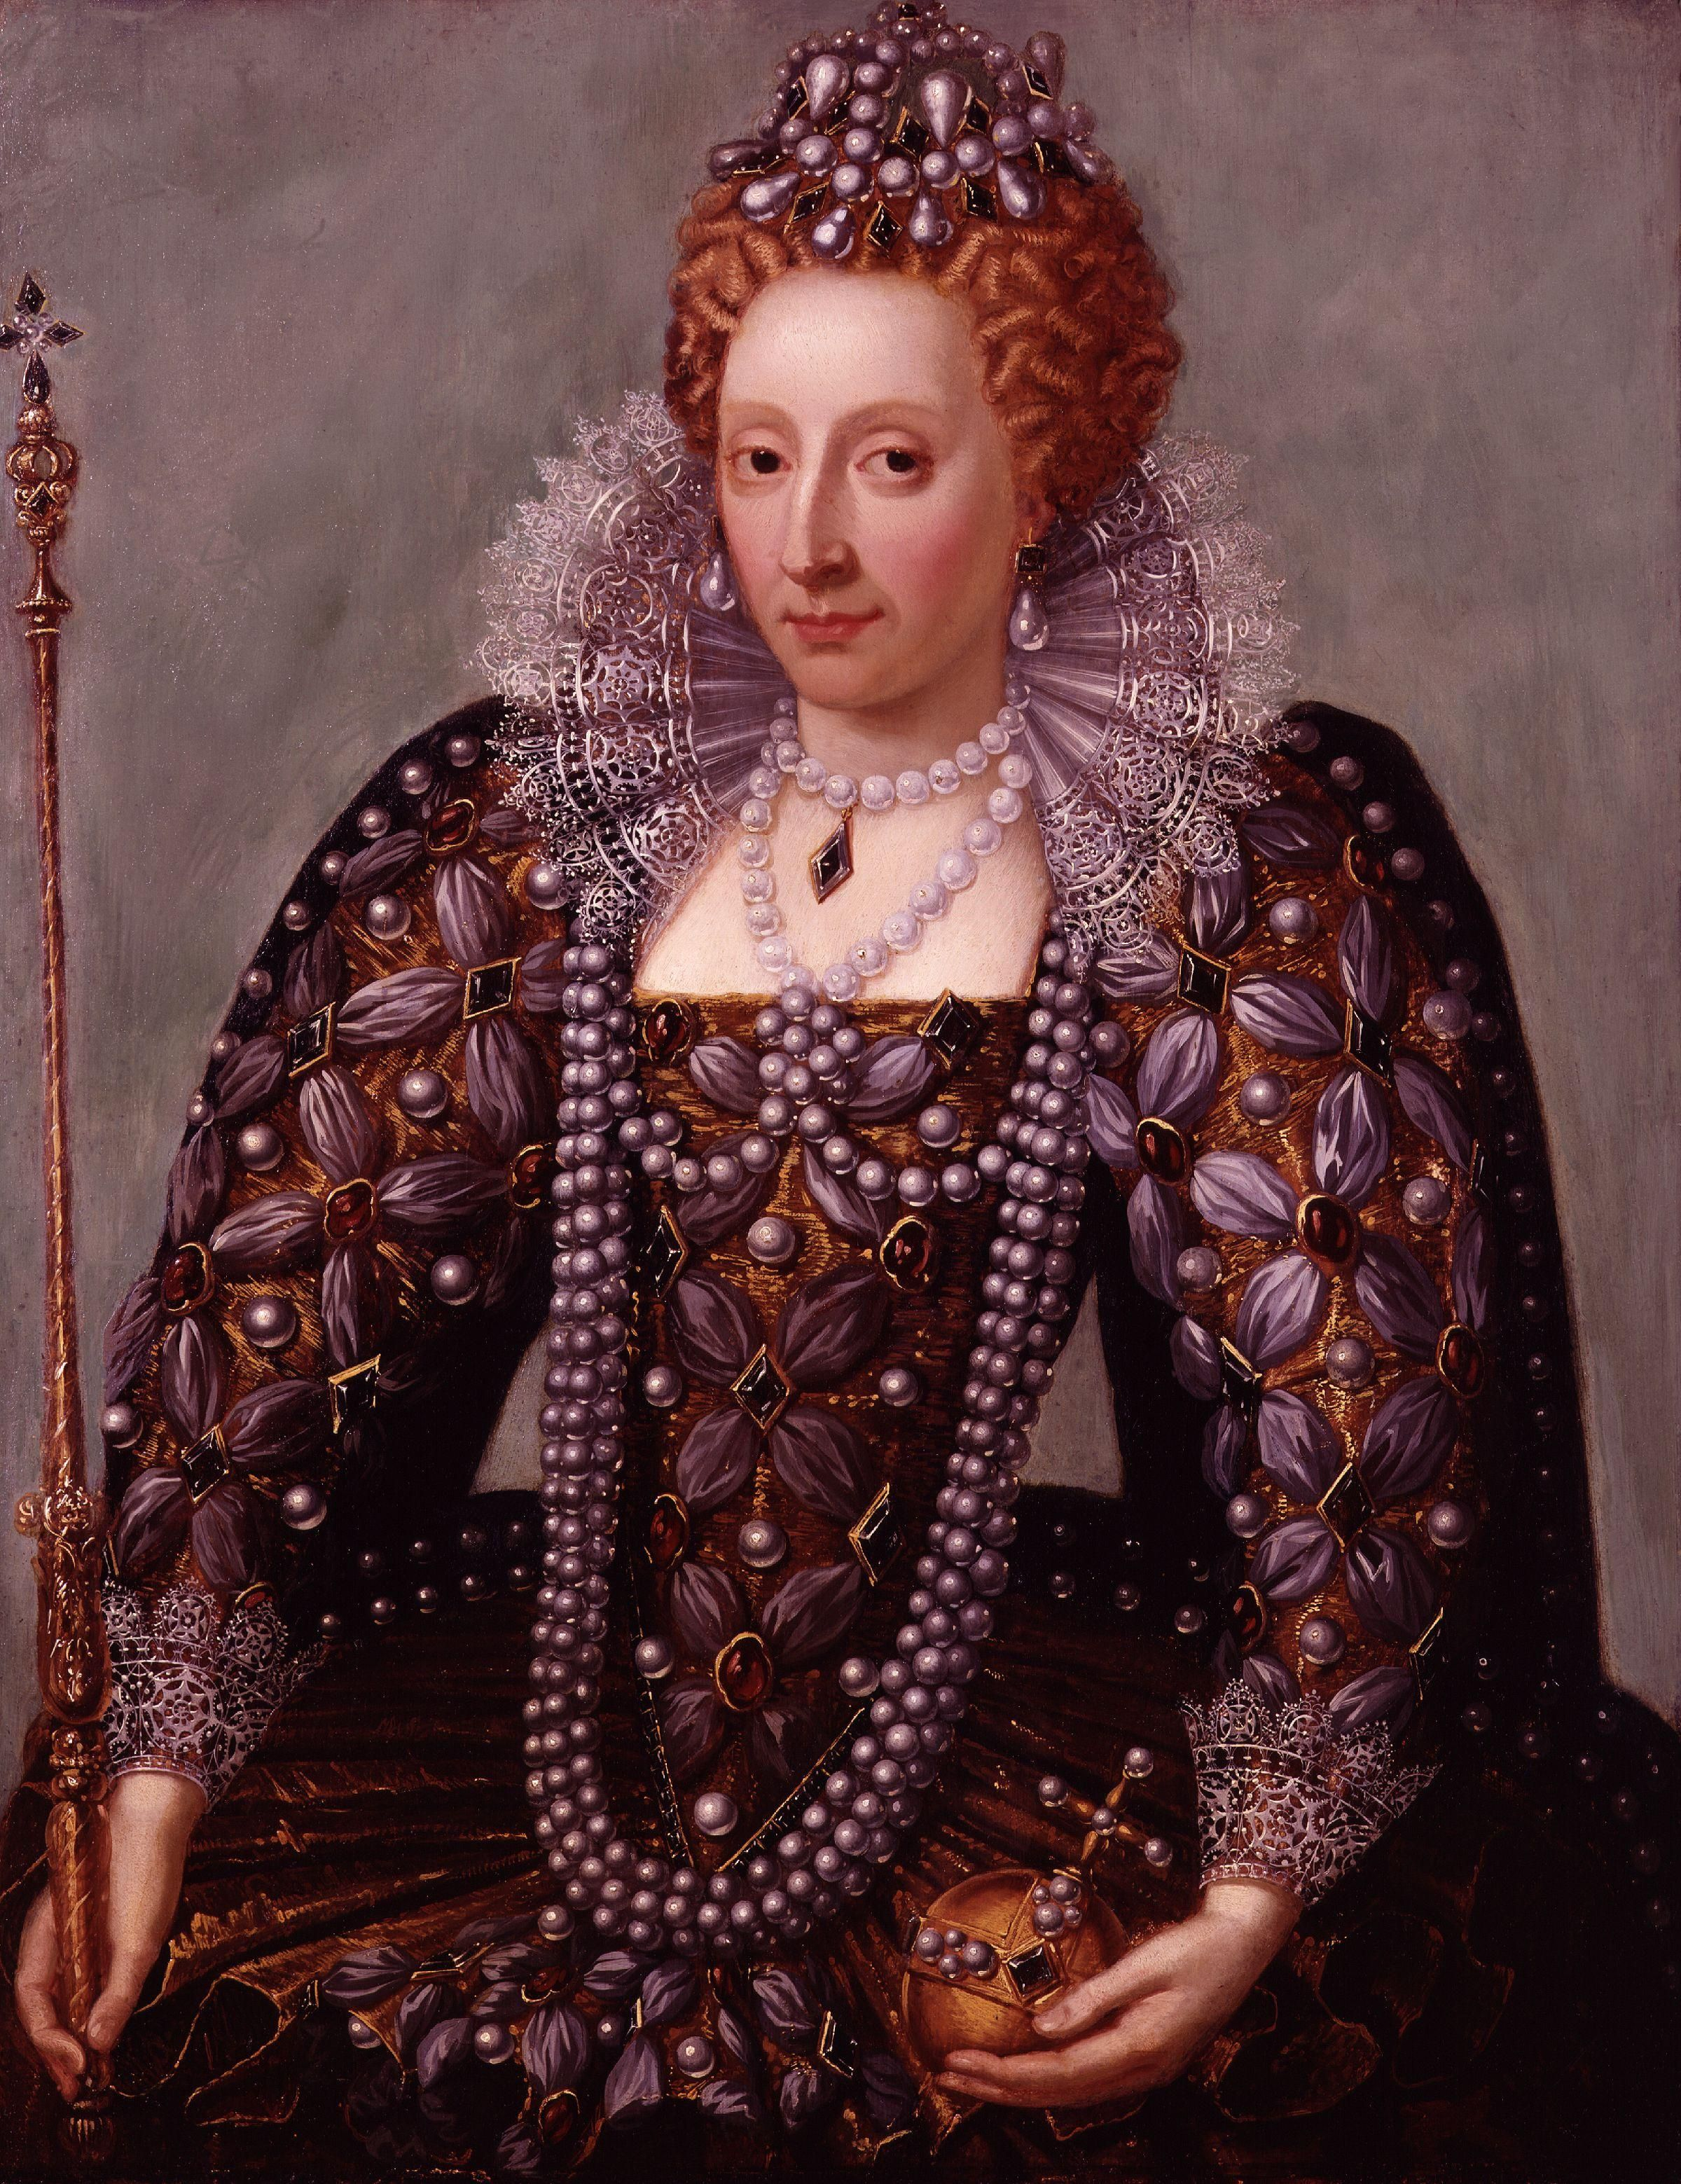 a30e51f3af1 Queen Elizabeth I. With what looks like Mauve agates which we saw used in  her personal travel cutlery also. Although more likely to be dyed mauve  lavender ...